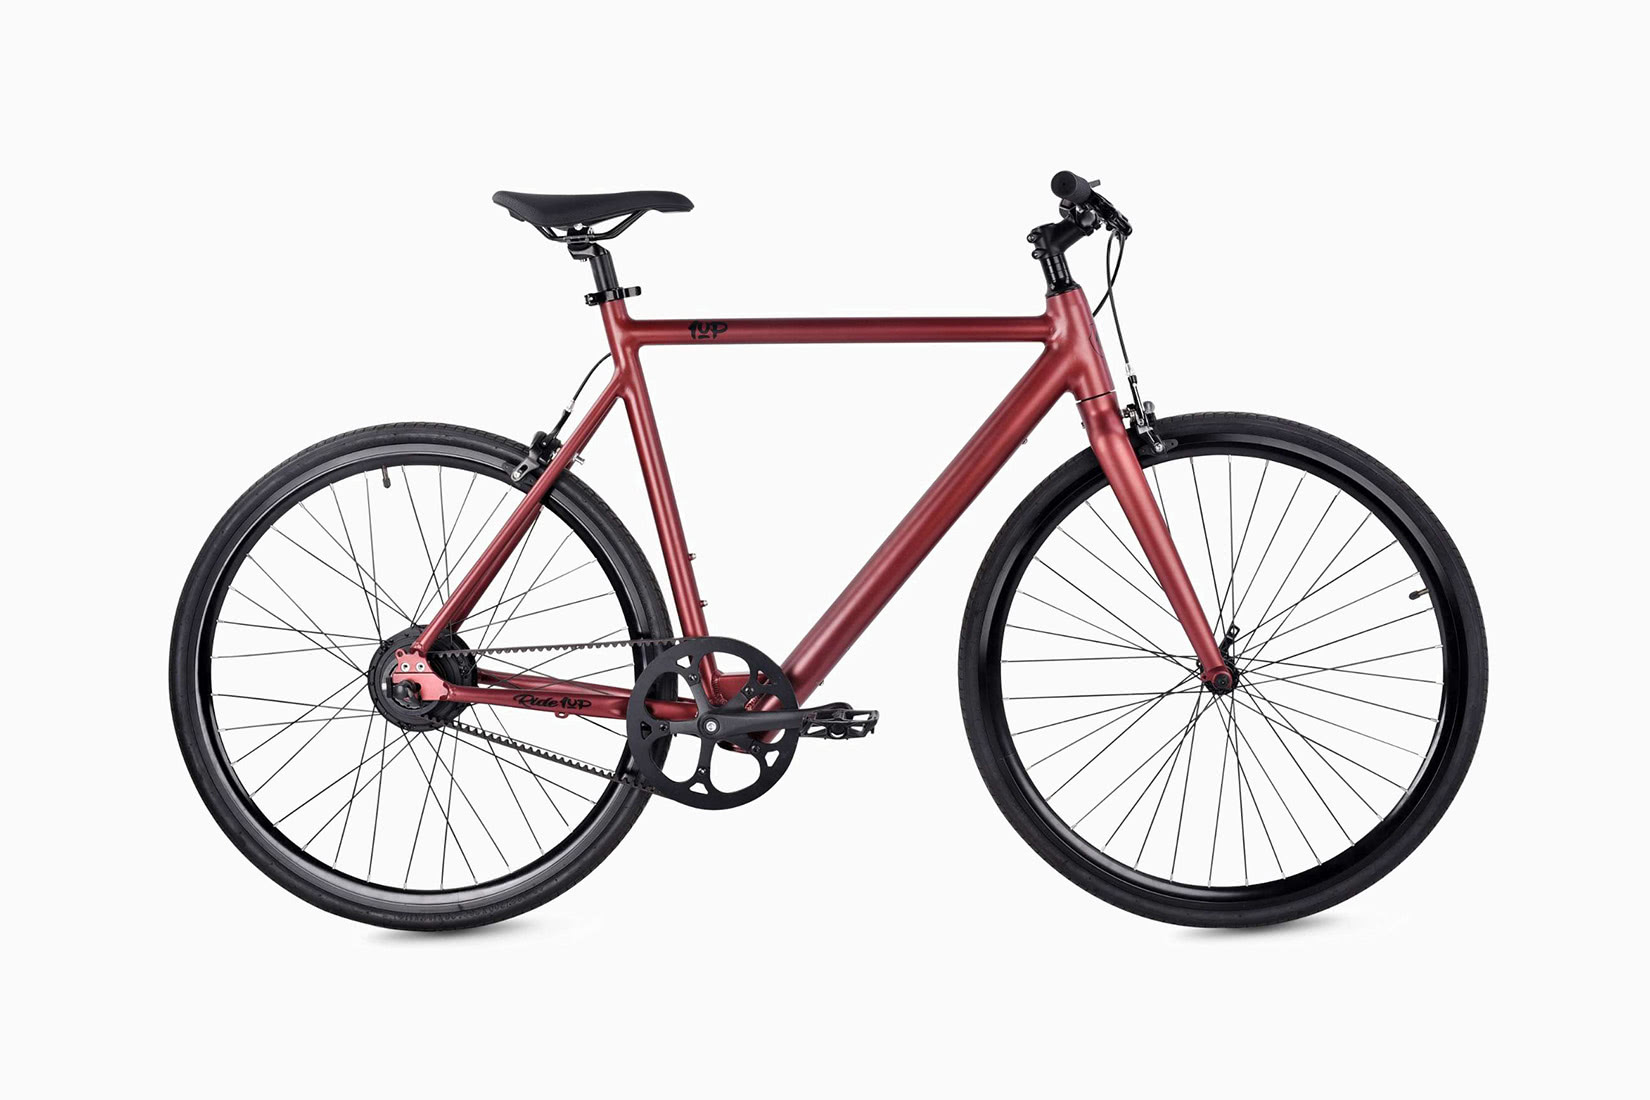 ride1up roadster v2 review electric bike luxe digital